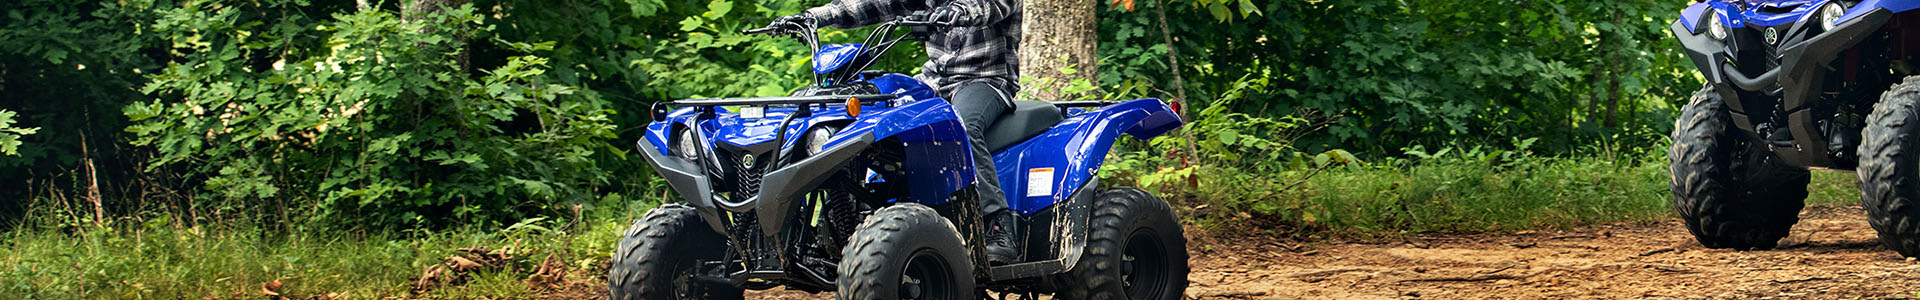 https://www.yamahas.nz/i/Images/Models/Headers/ATV/Grizzly90Banner_1.jpg